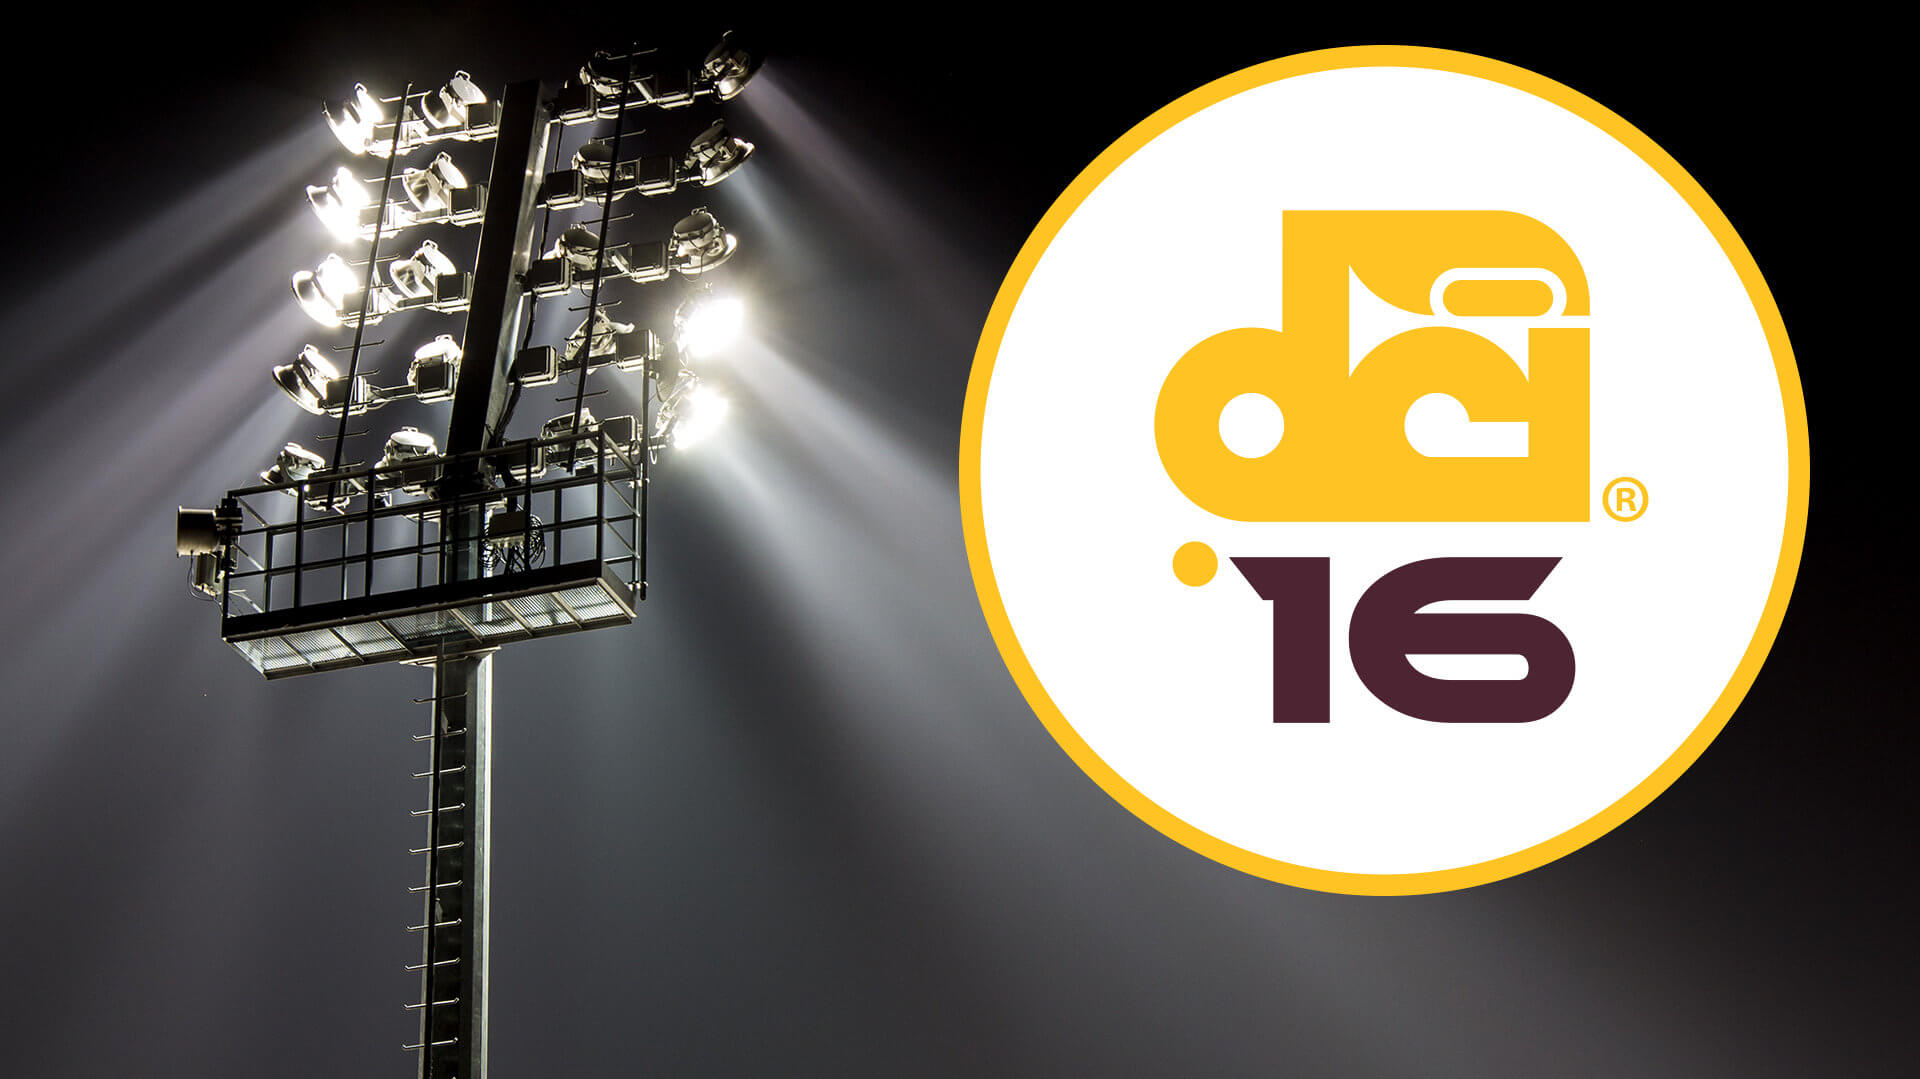 50 fast facts about the 2016 DCI Tour